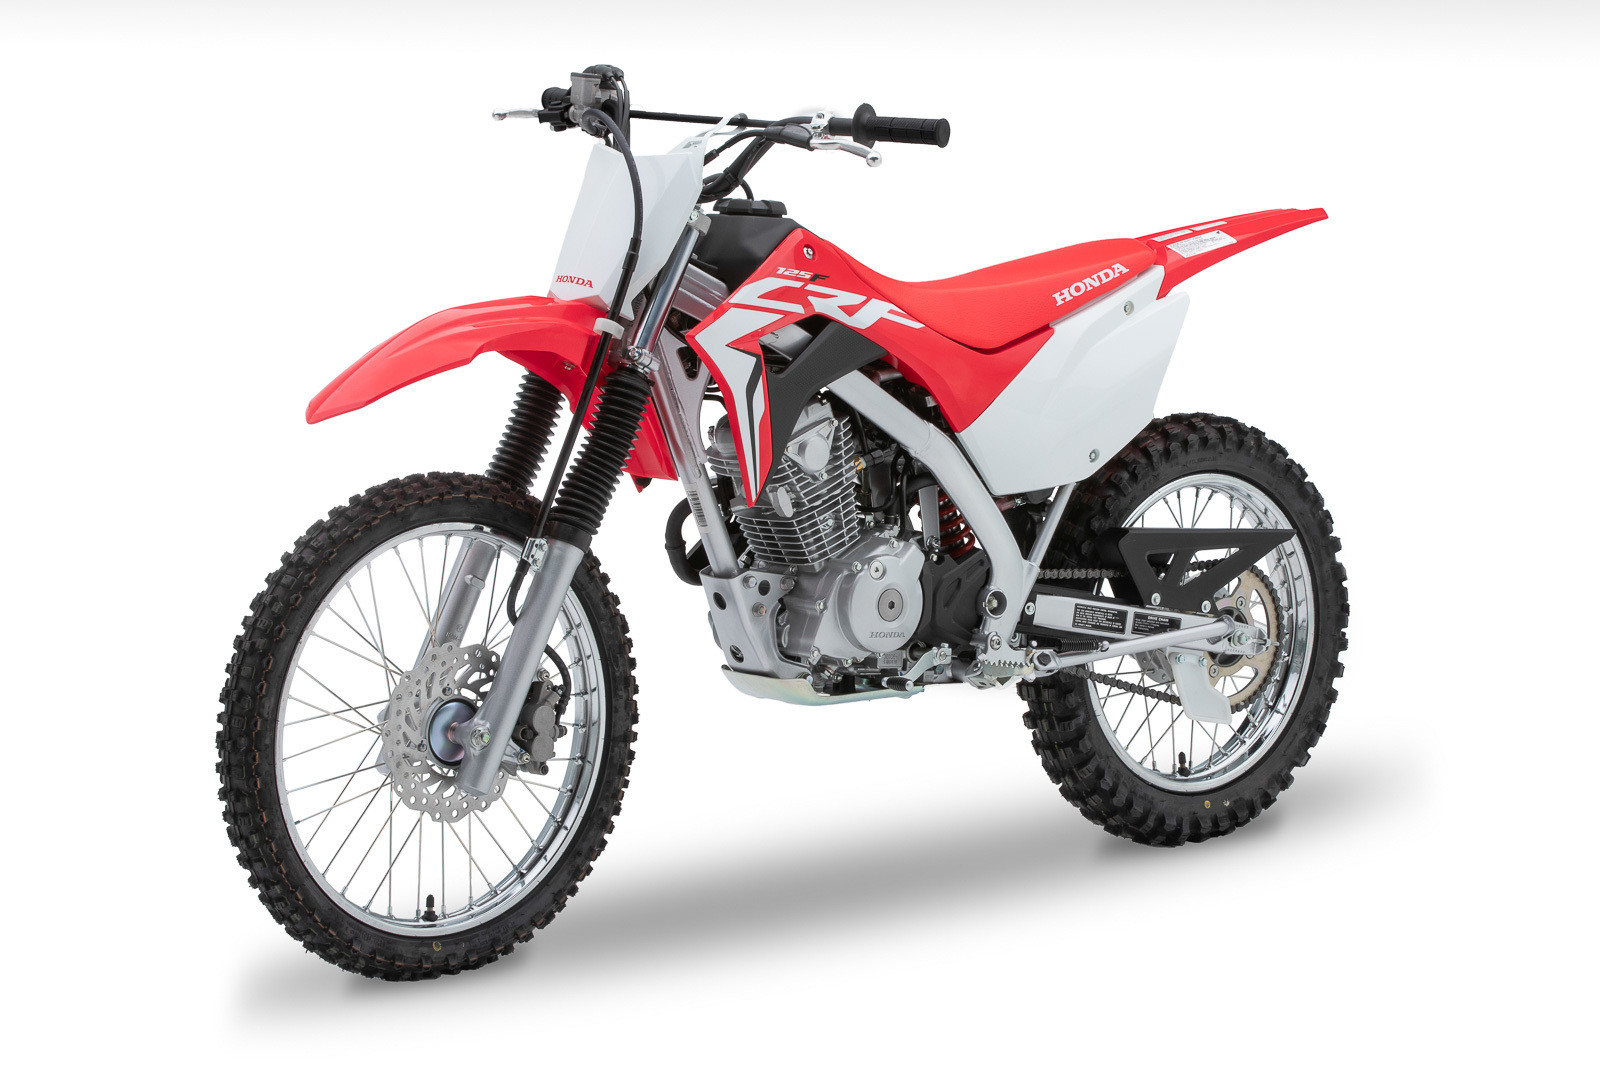 2019 Honda CRF125 Big Wheel.